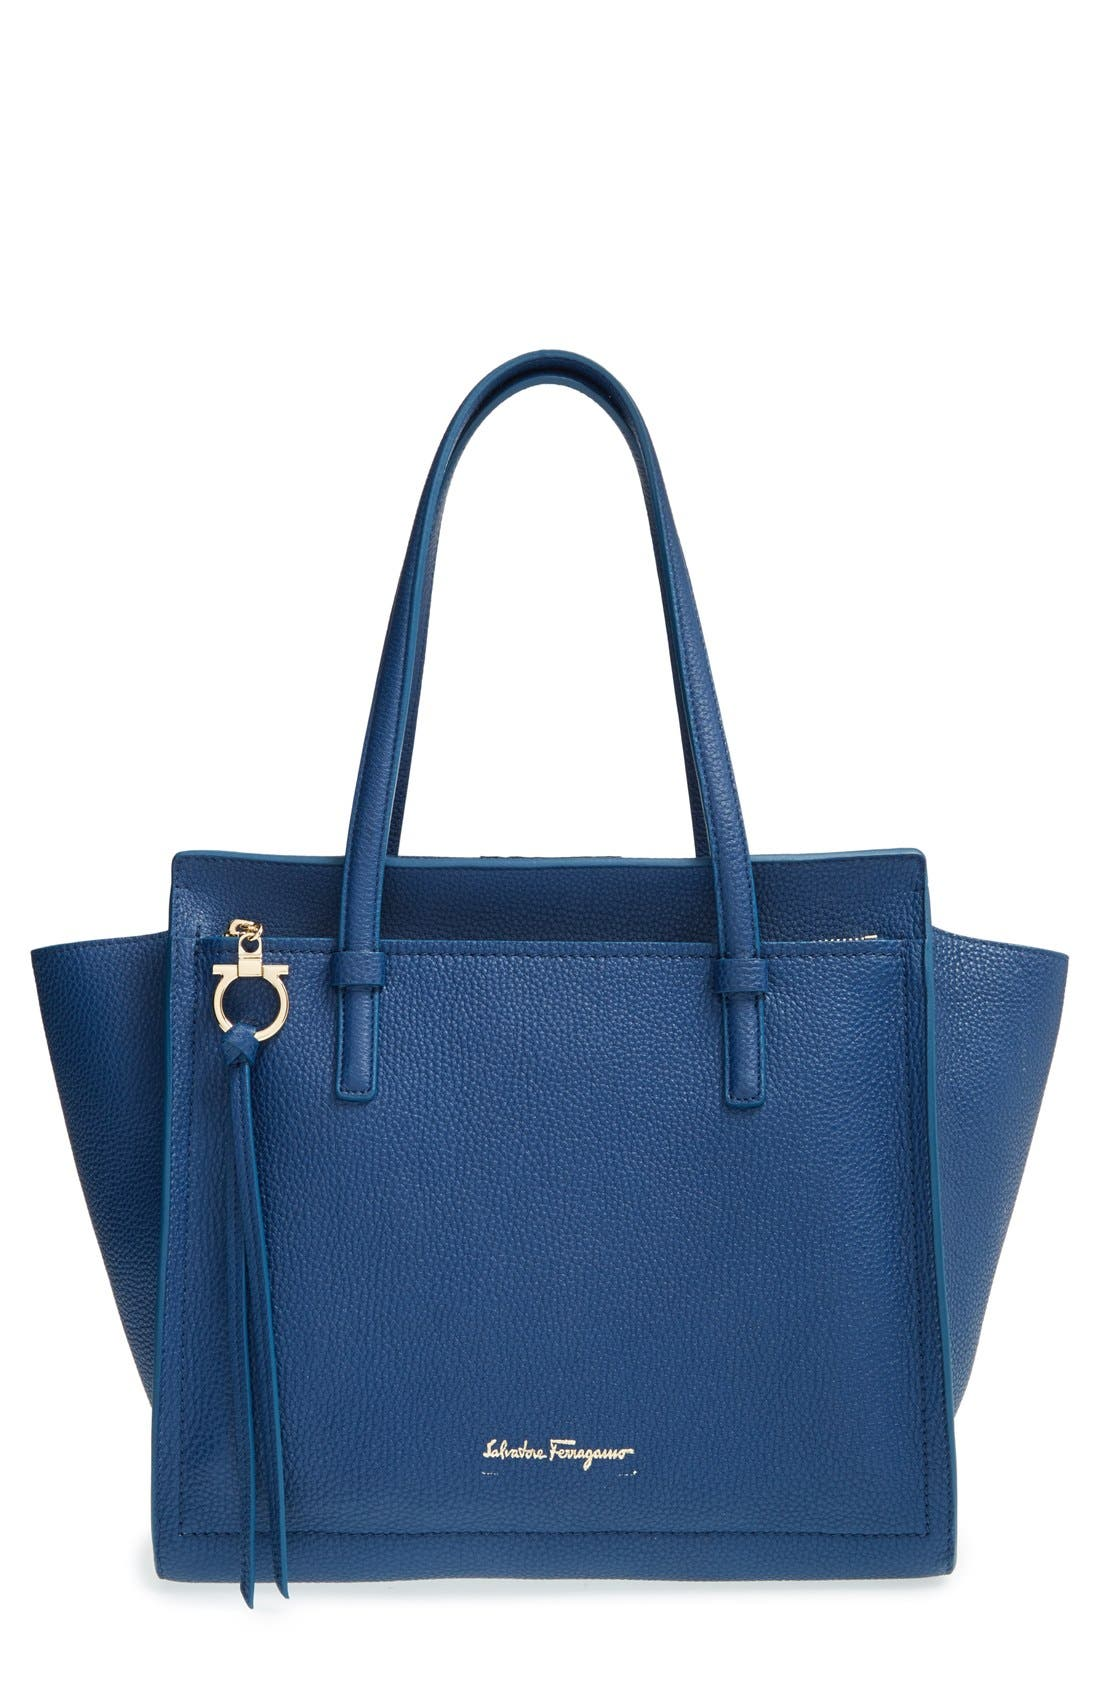 'Small Amy' Calfskin Leather Tote,                             Main thumbnail 1, color,                             400